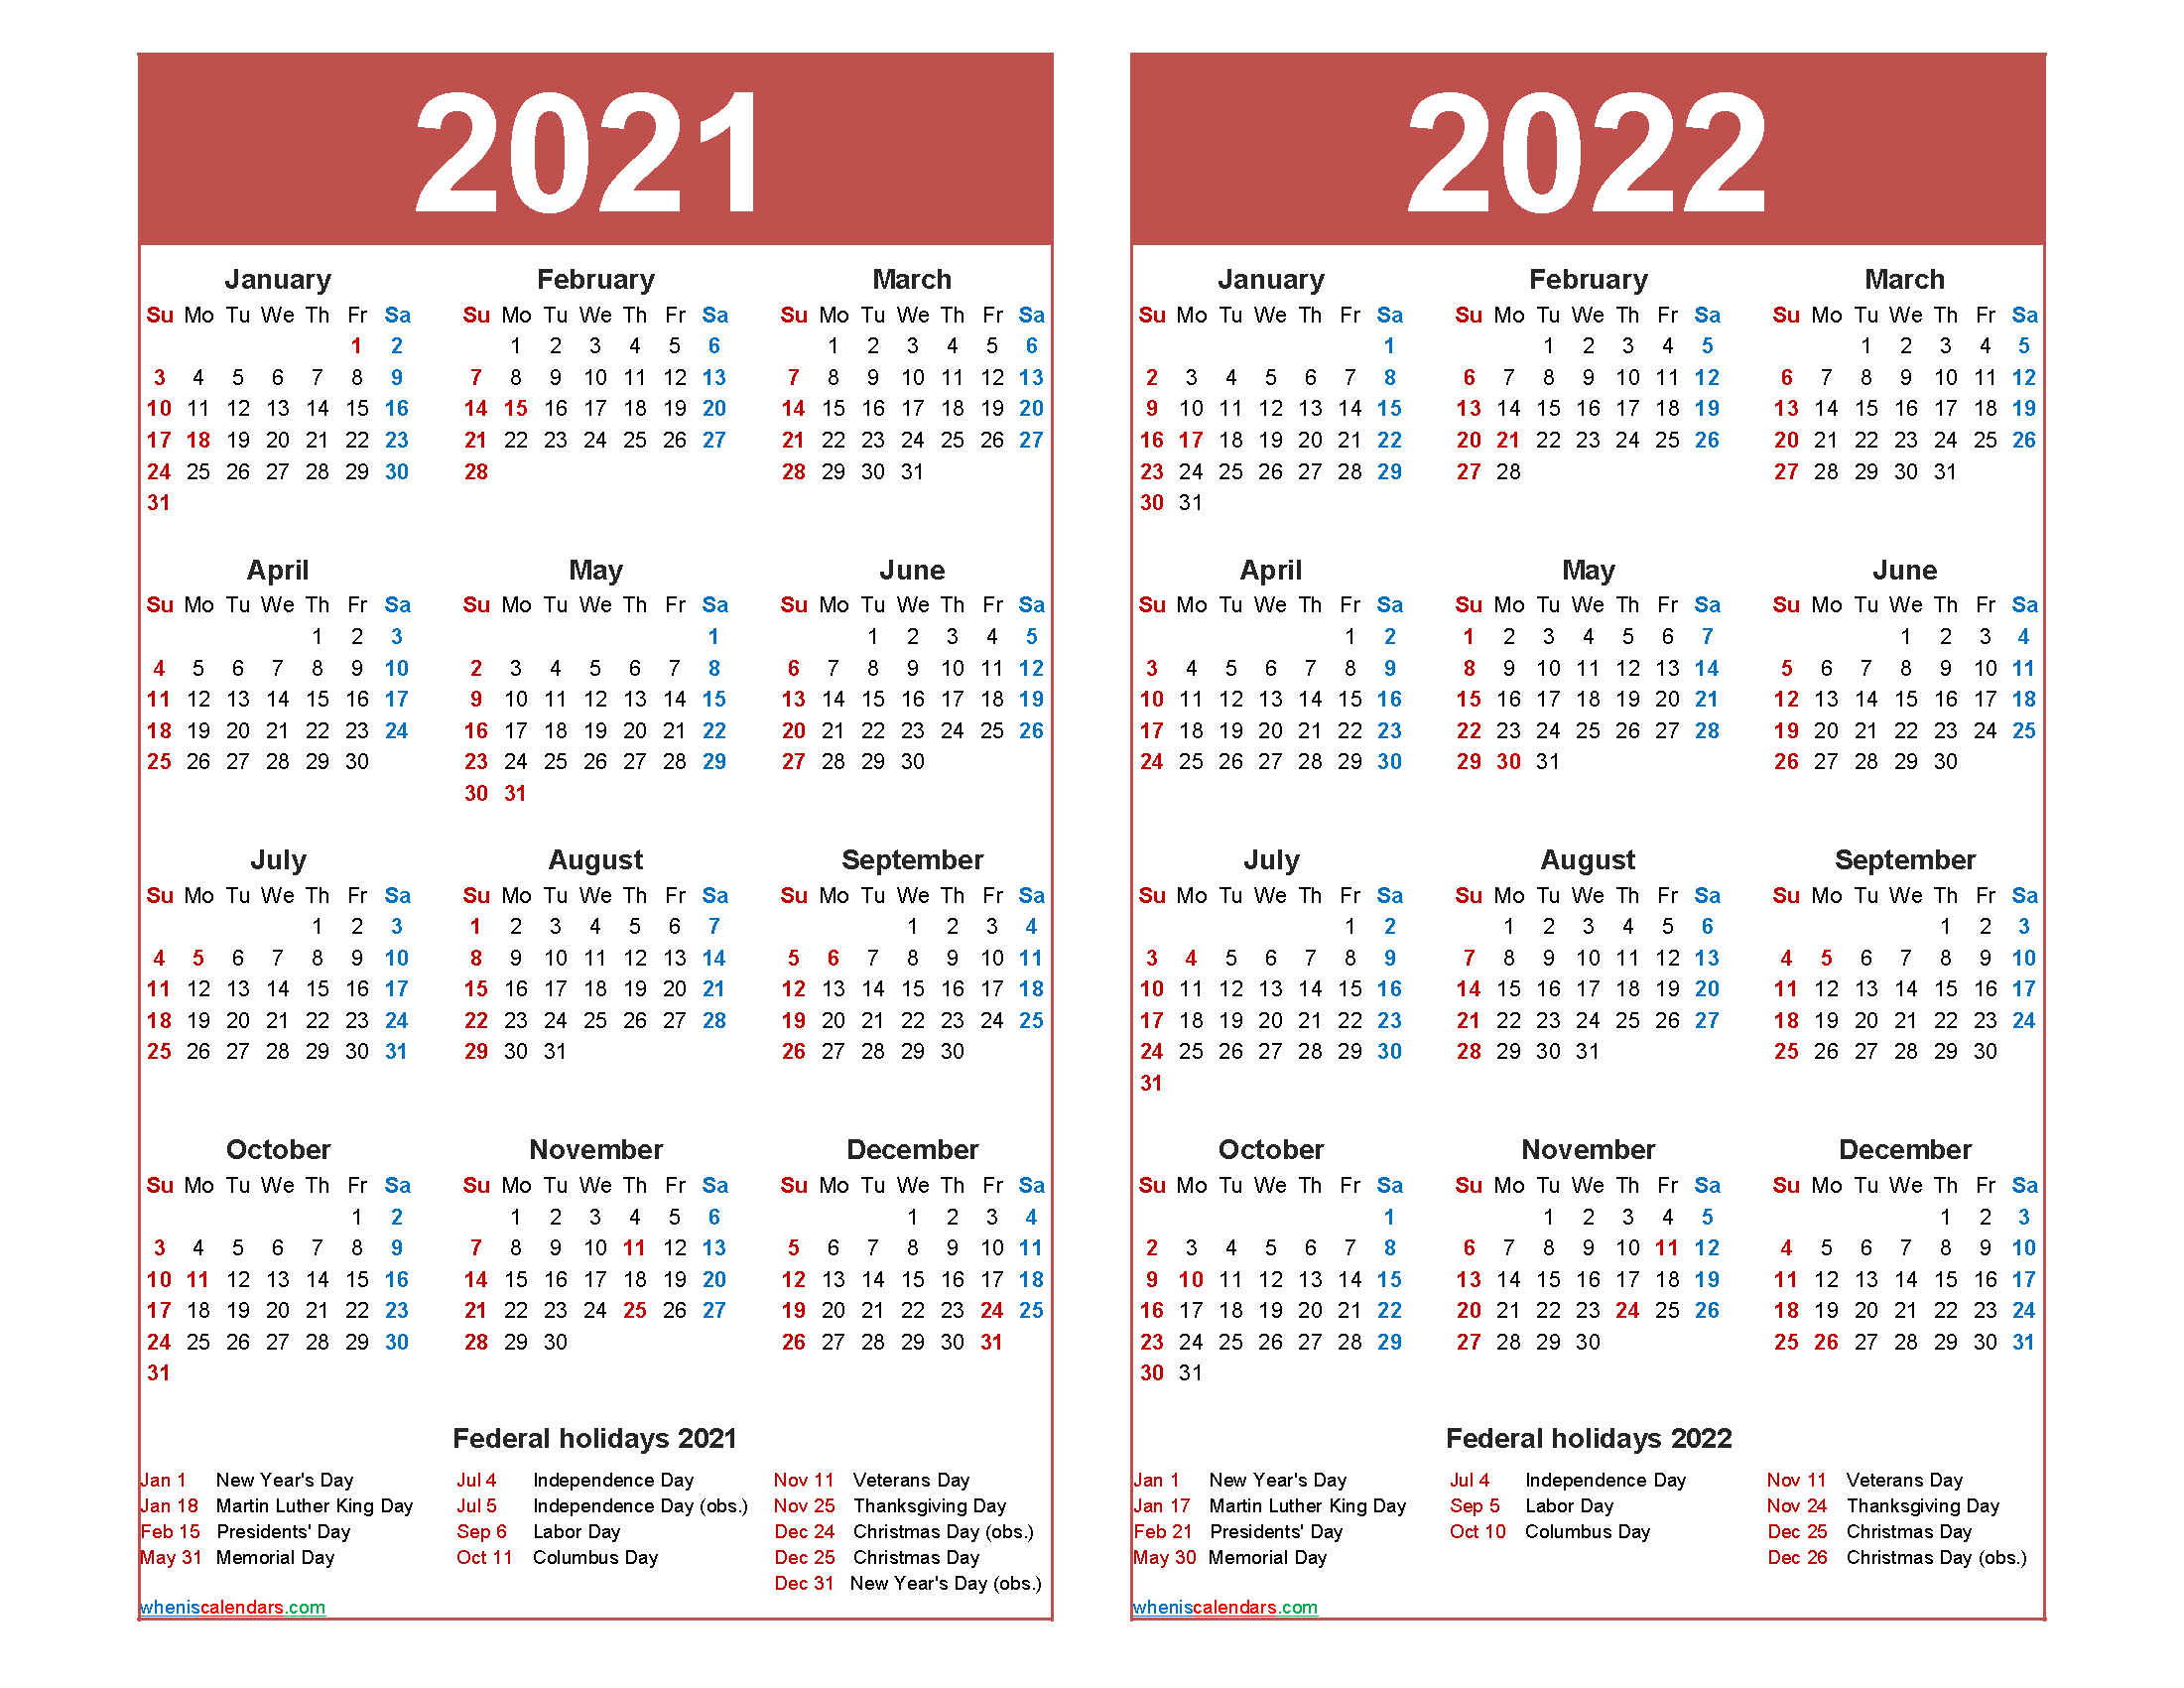 Free 2021 And 2022 Calendar Printable With Holidays - Free